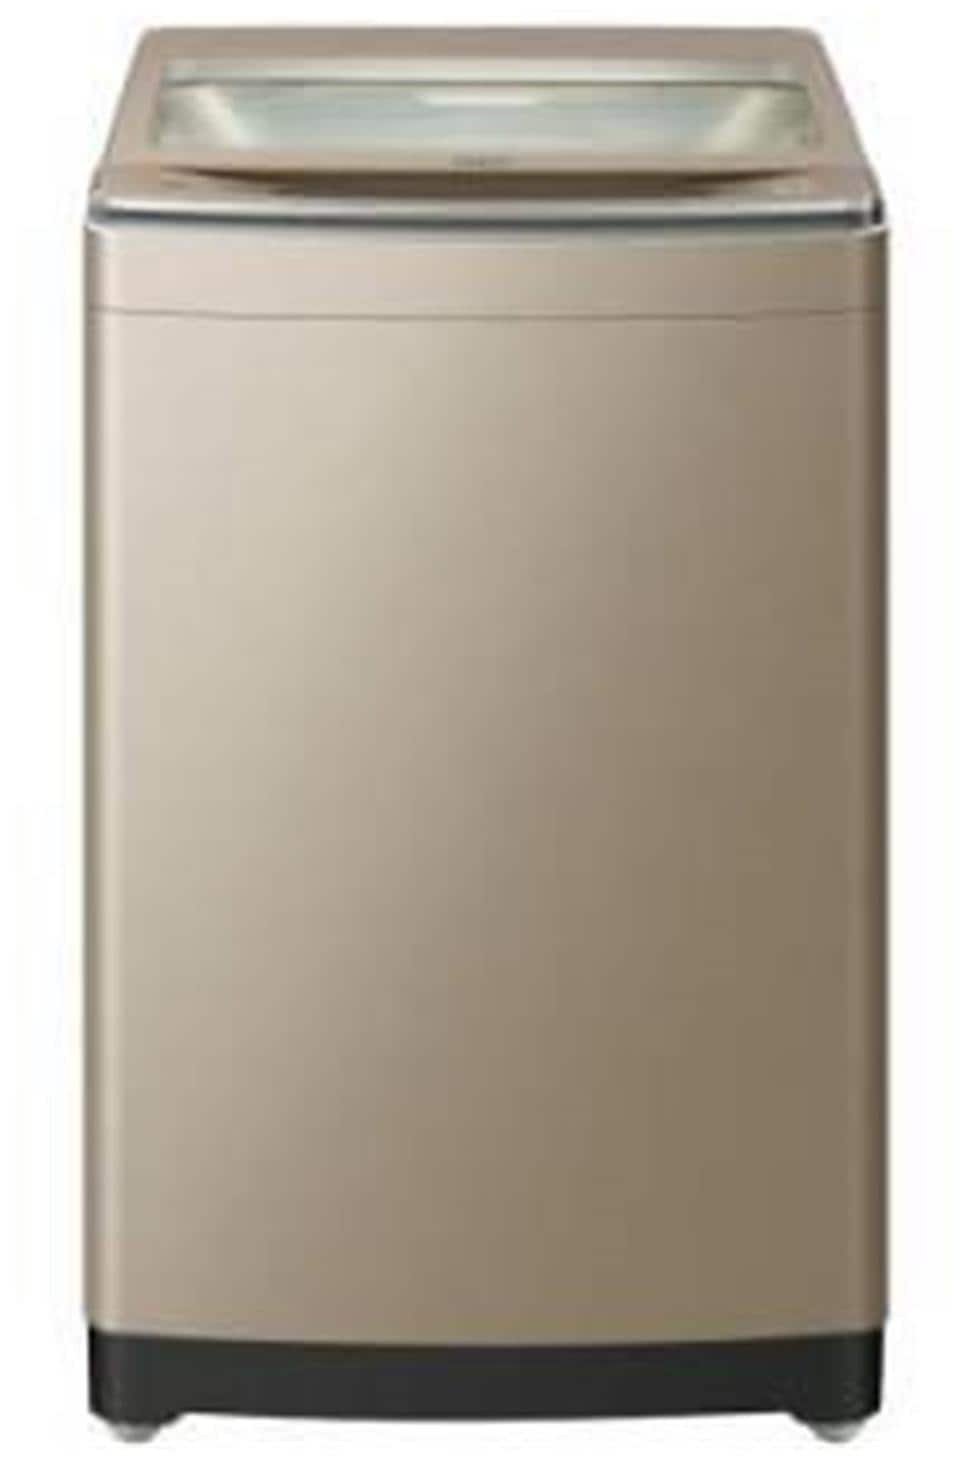 Haier 8.5 kg Fully Automatic Top Load Washing Machine (MS8518BZ-51, Gold)